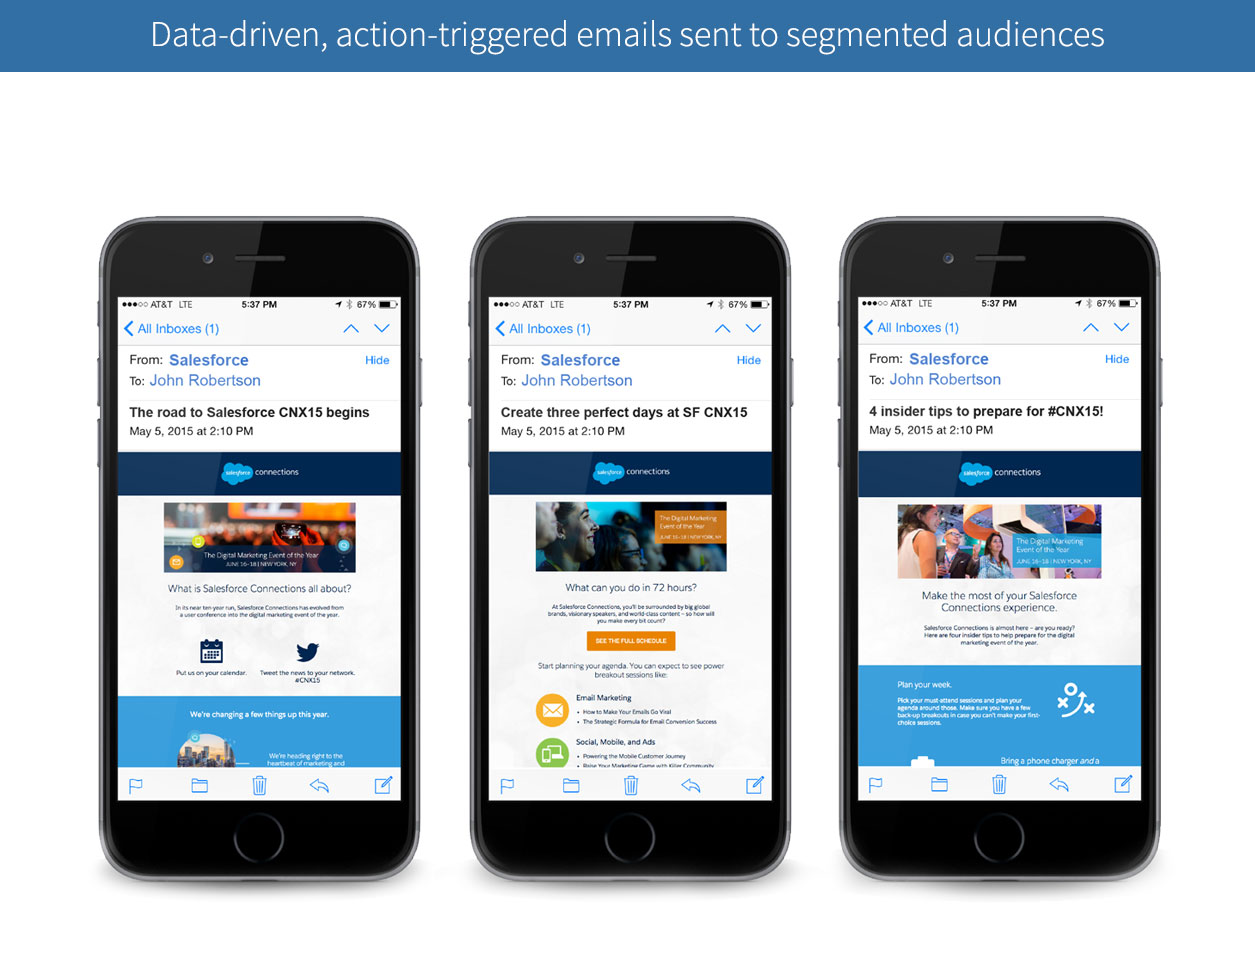 Data-driven, action-triggered emails sent to segmented audiences